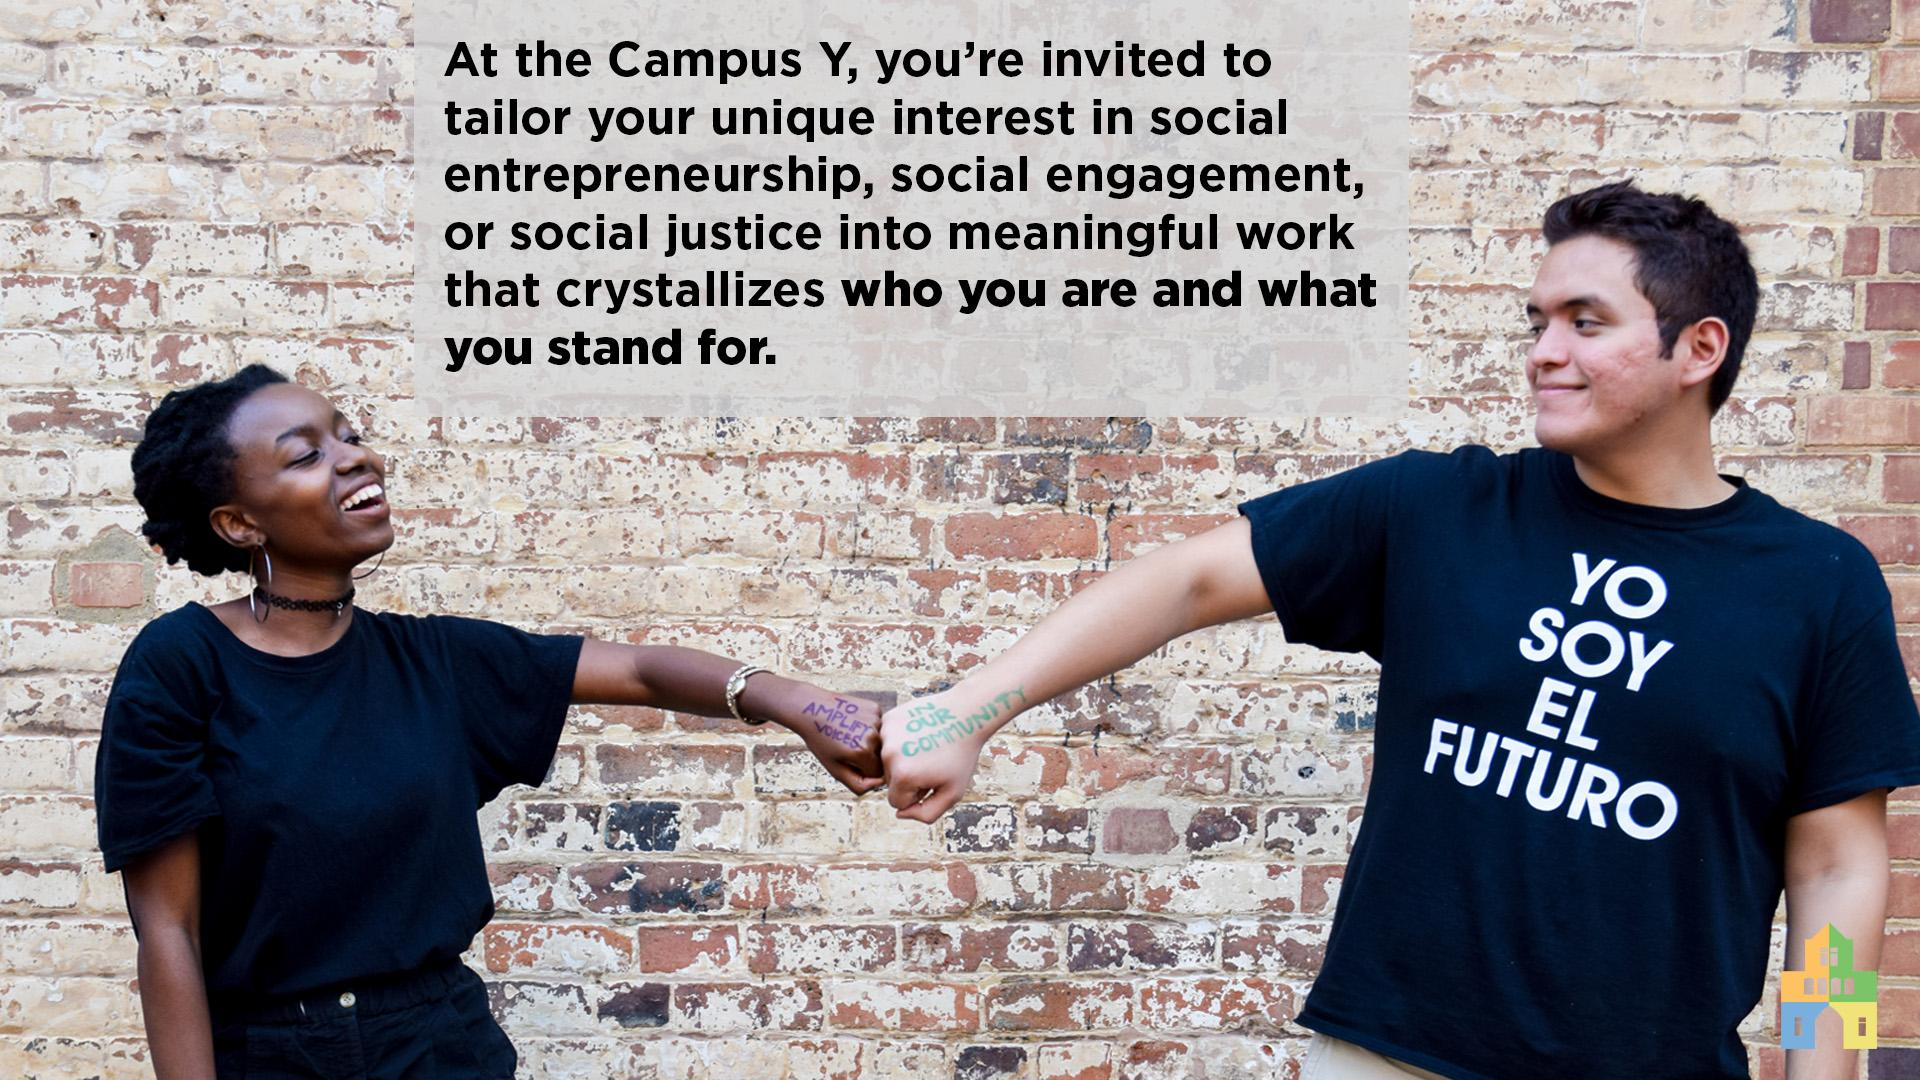 At the Campus Y,you're invited to tailor your particular interest in social entrepreneurship, social engagement, or social justice into meaningful work that crystallizes who you are and what you stand for.